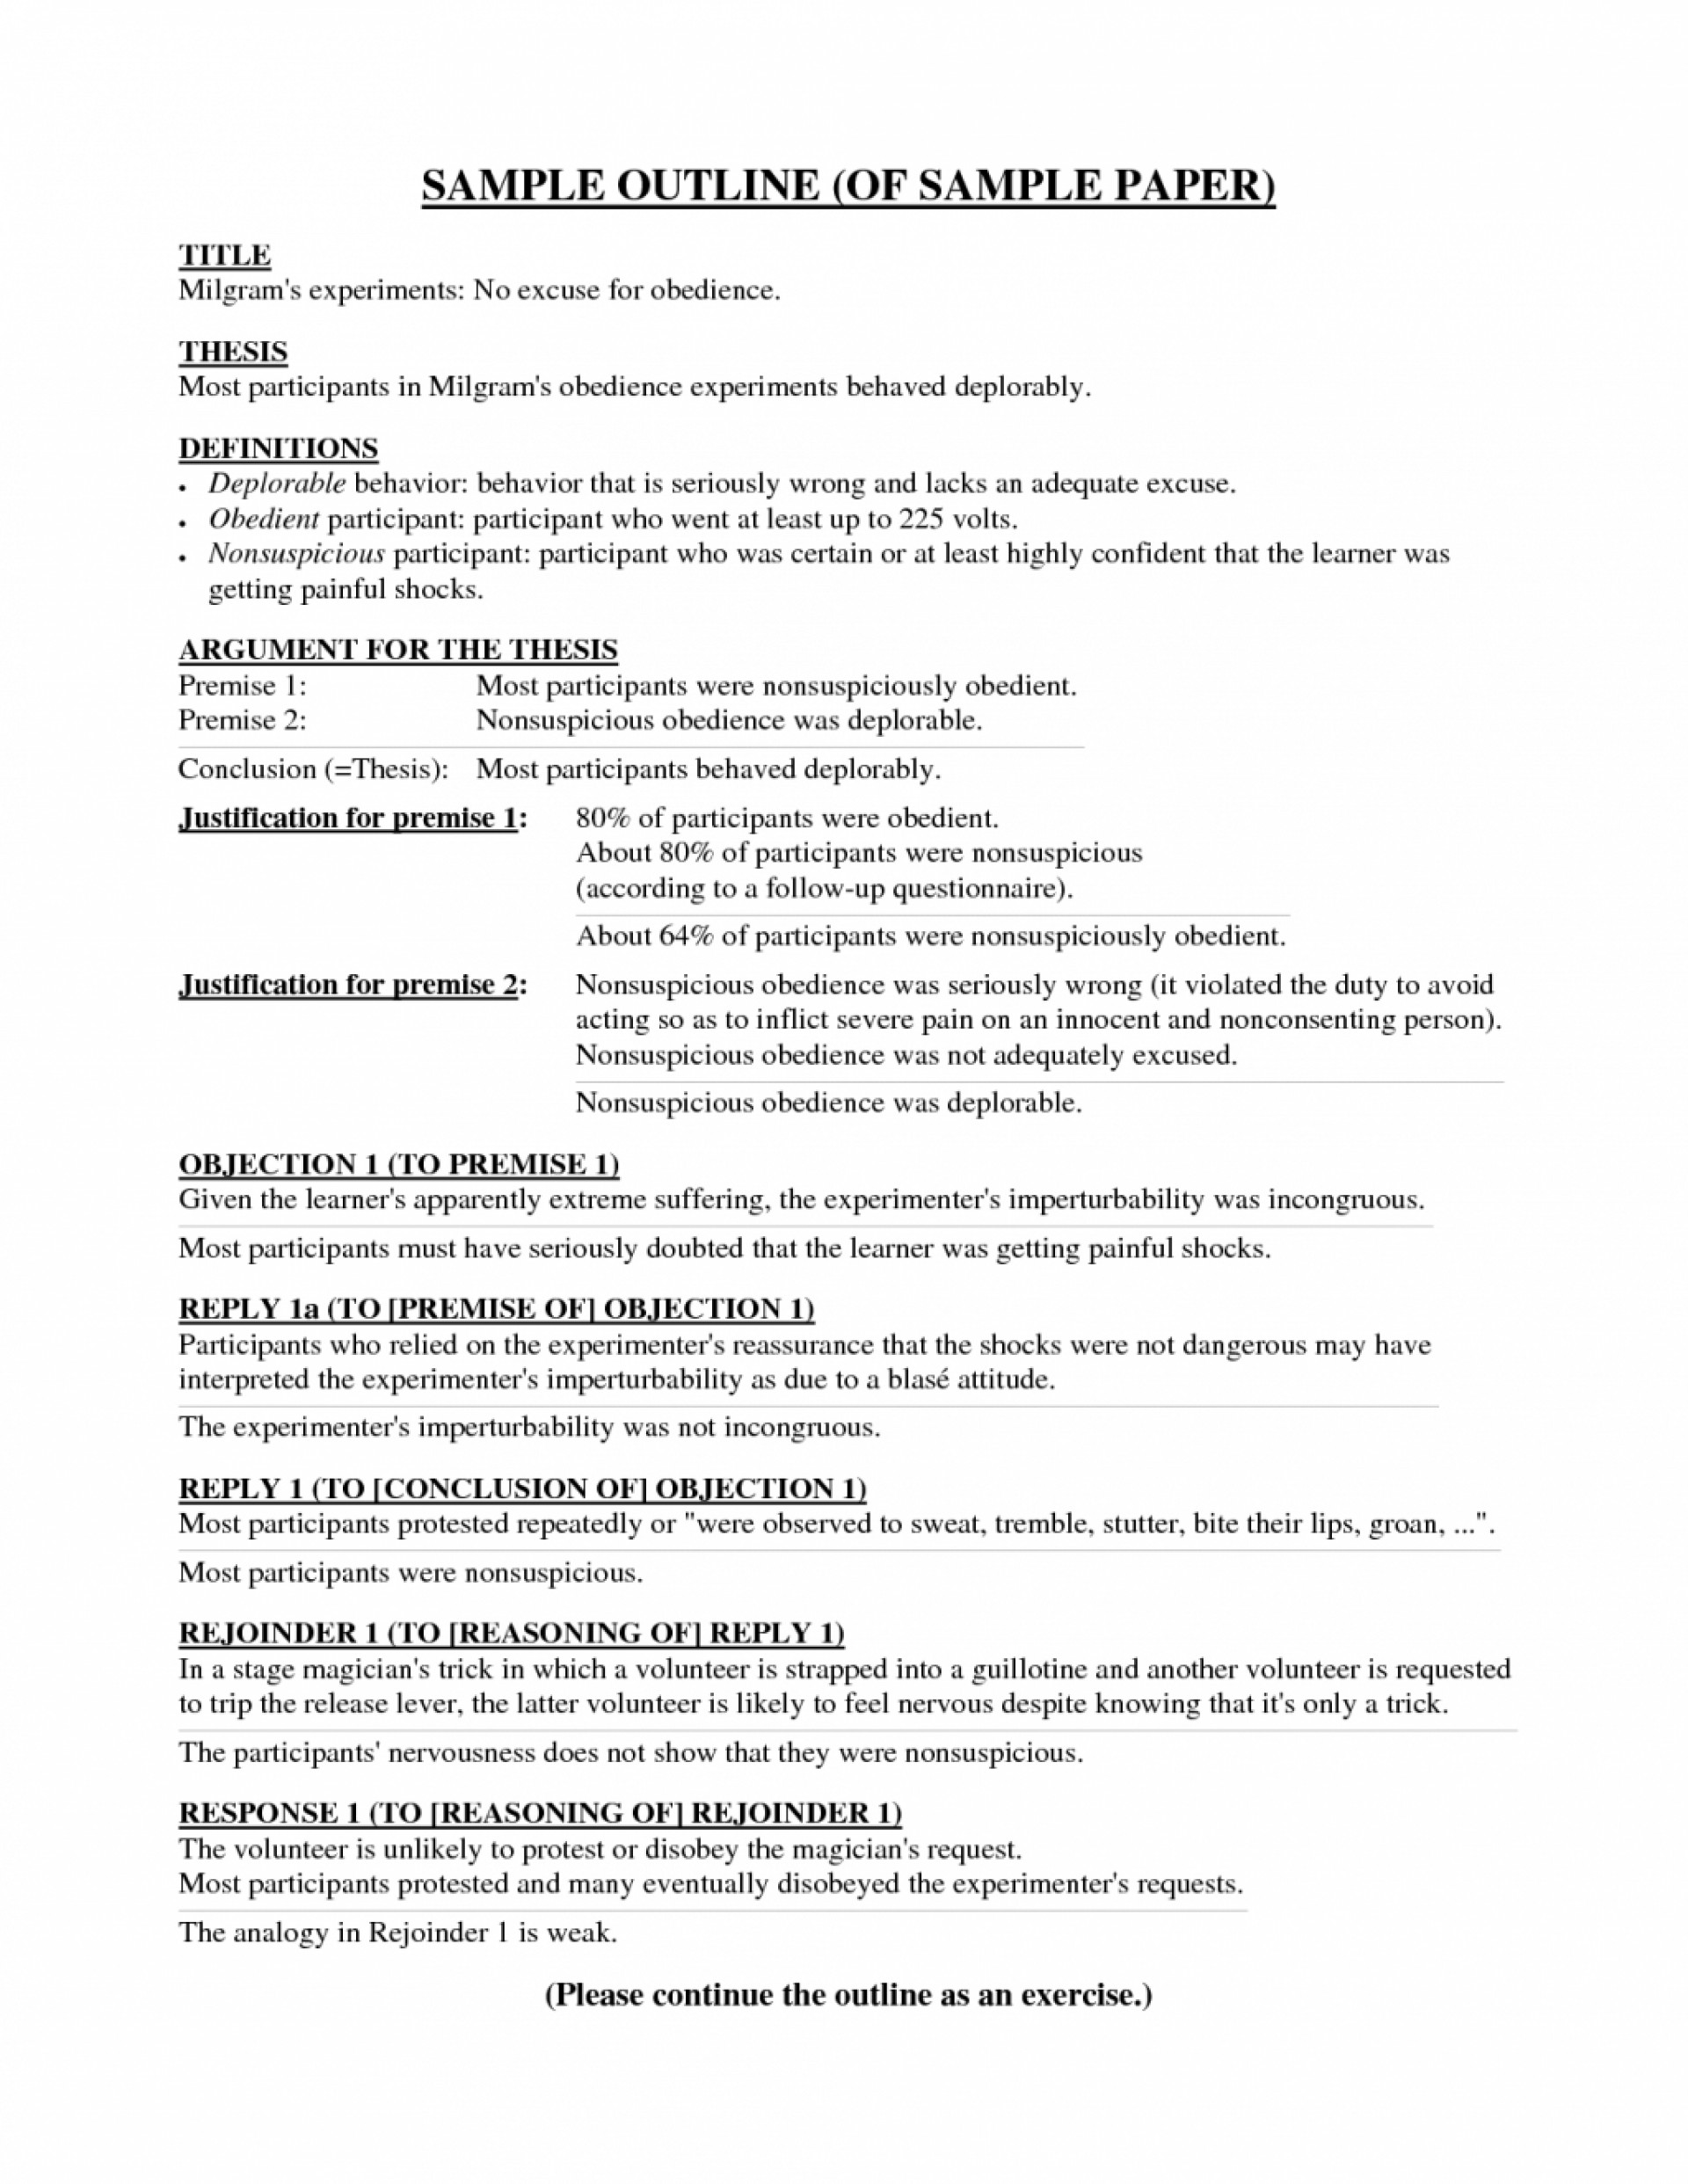 022 20example Essay Layout Thesis Paper Outline Picture Resume Examples Of Outlines For Research Papers In Apa20 1024x1325 Incredible Format Mla Sample Sentence Example Statement 1920